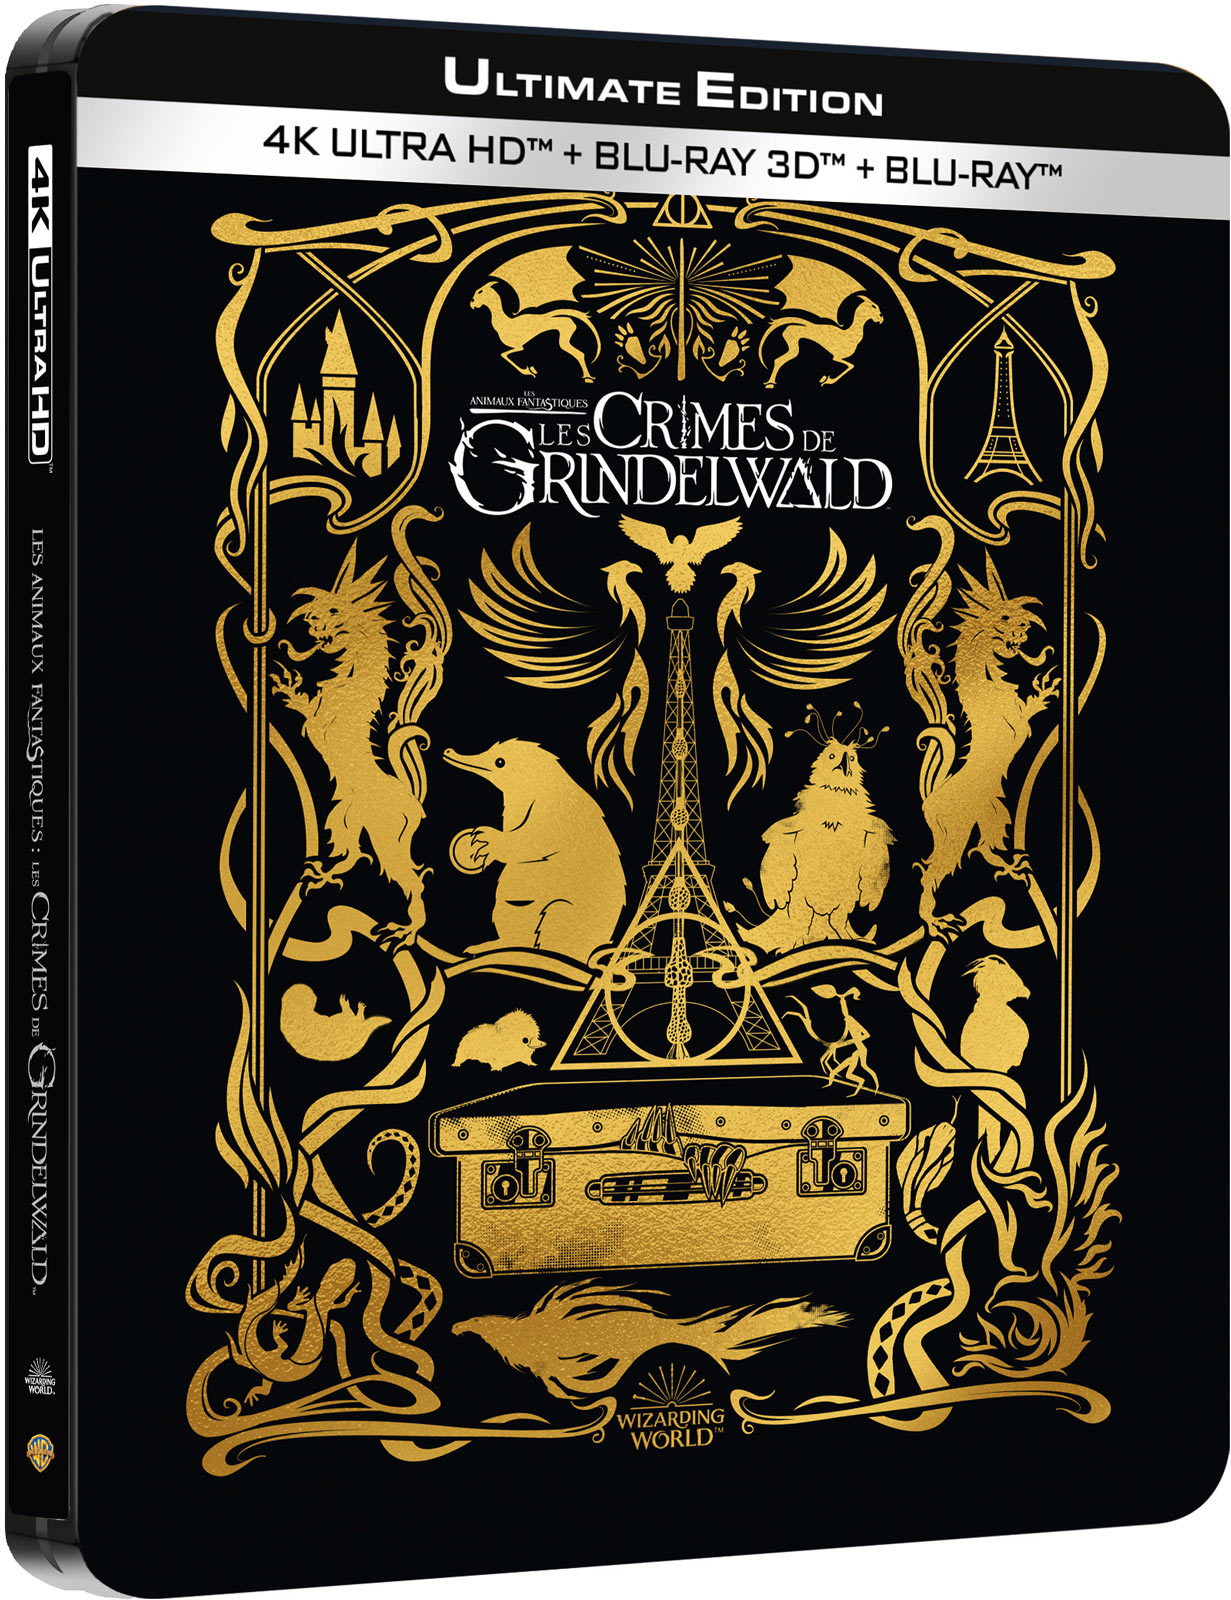 Les Animaux Fantastiques : Les Crimes de Grindelwald - 4K Ultra HD + Blu-ray 3D + Blu-ray + Blu-ray Version Longue + CD Audio BOF - SteelBook Fnac